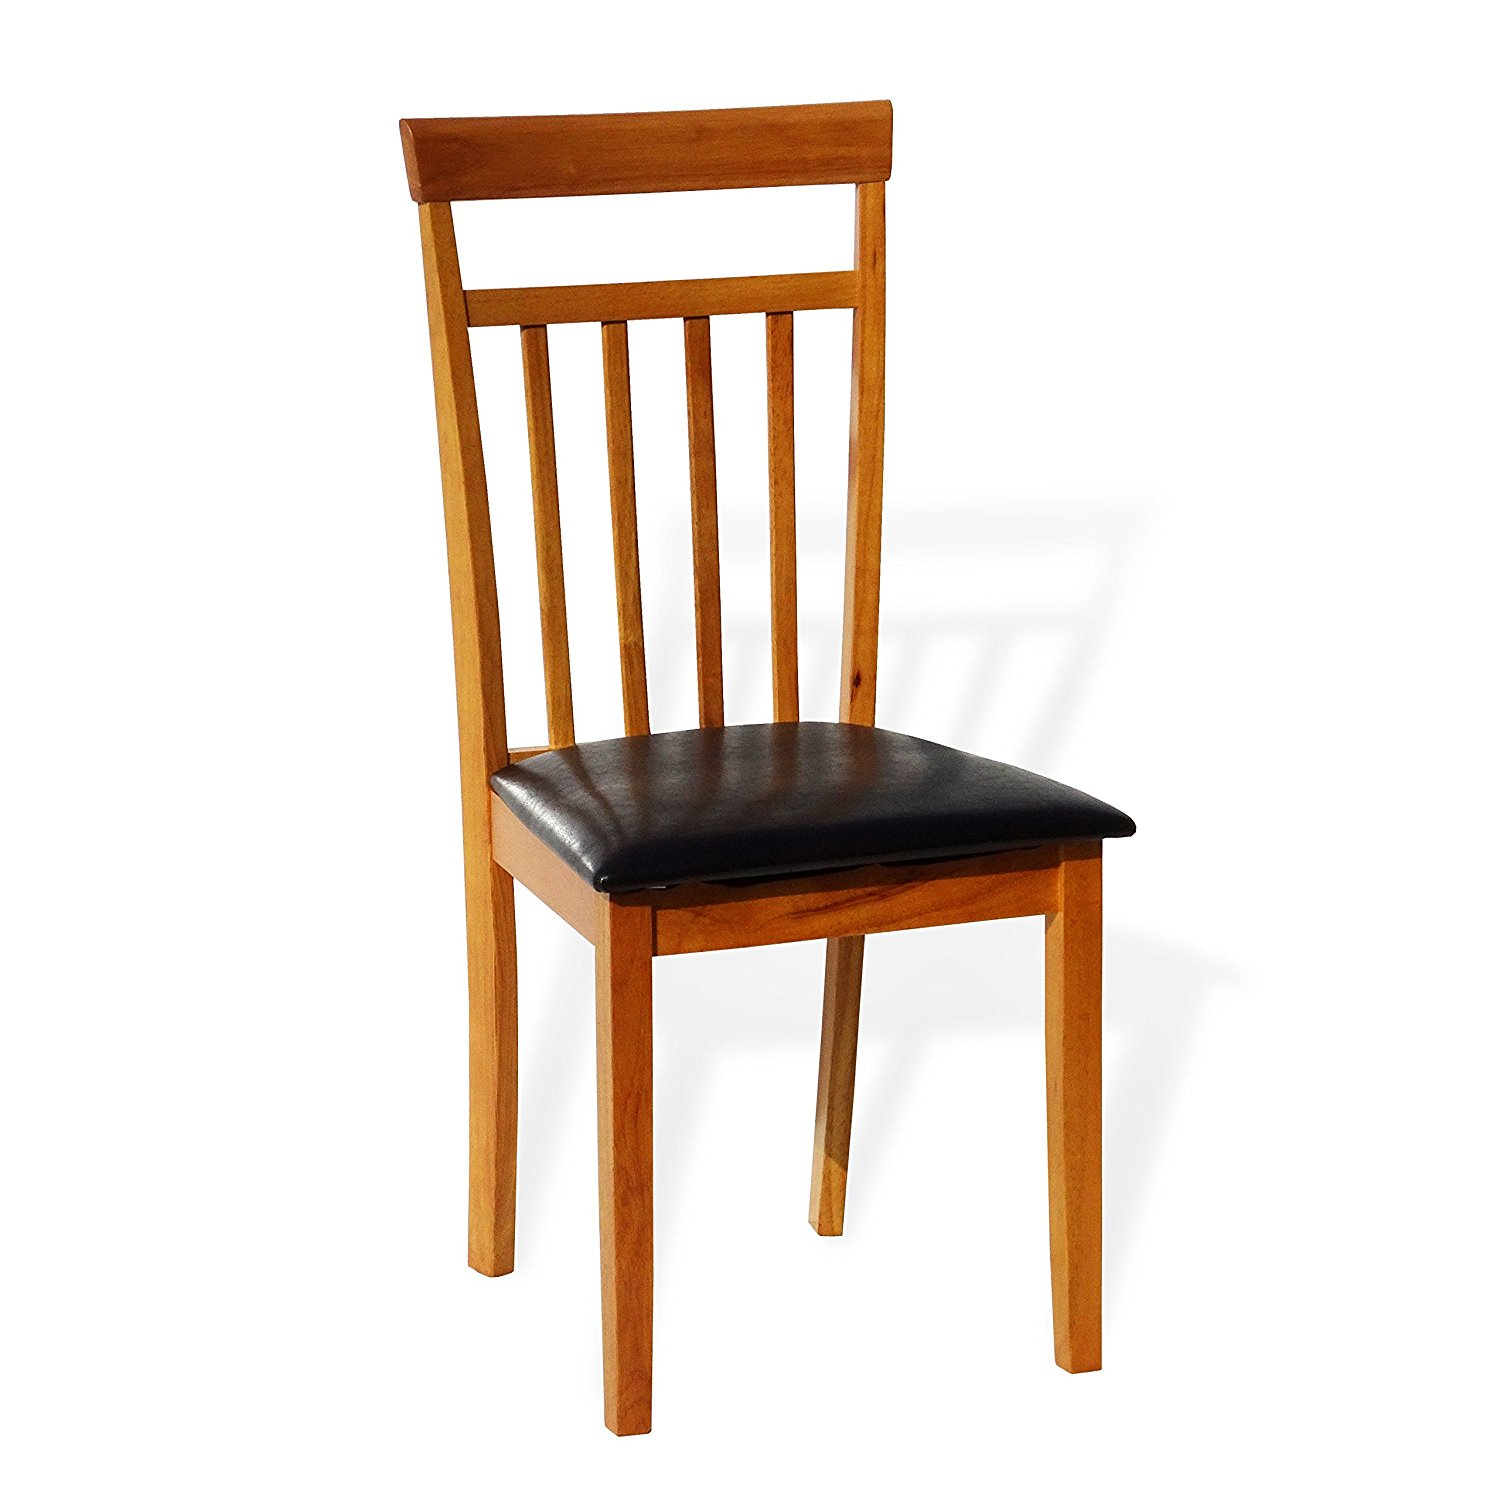 Buy Warm Wooden Chair In Usa Best Price Free Shipping